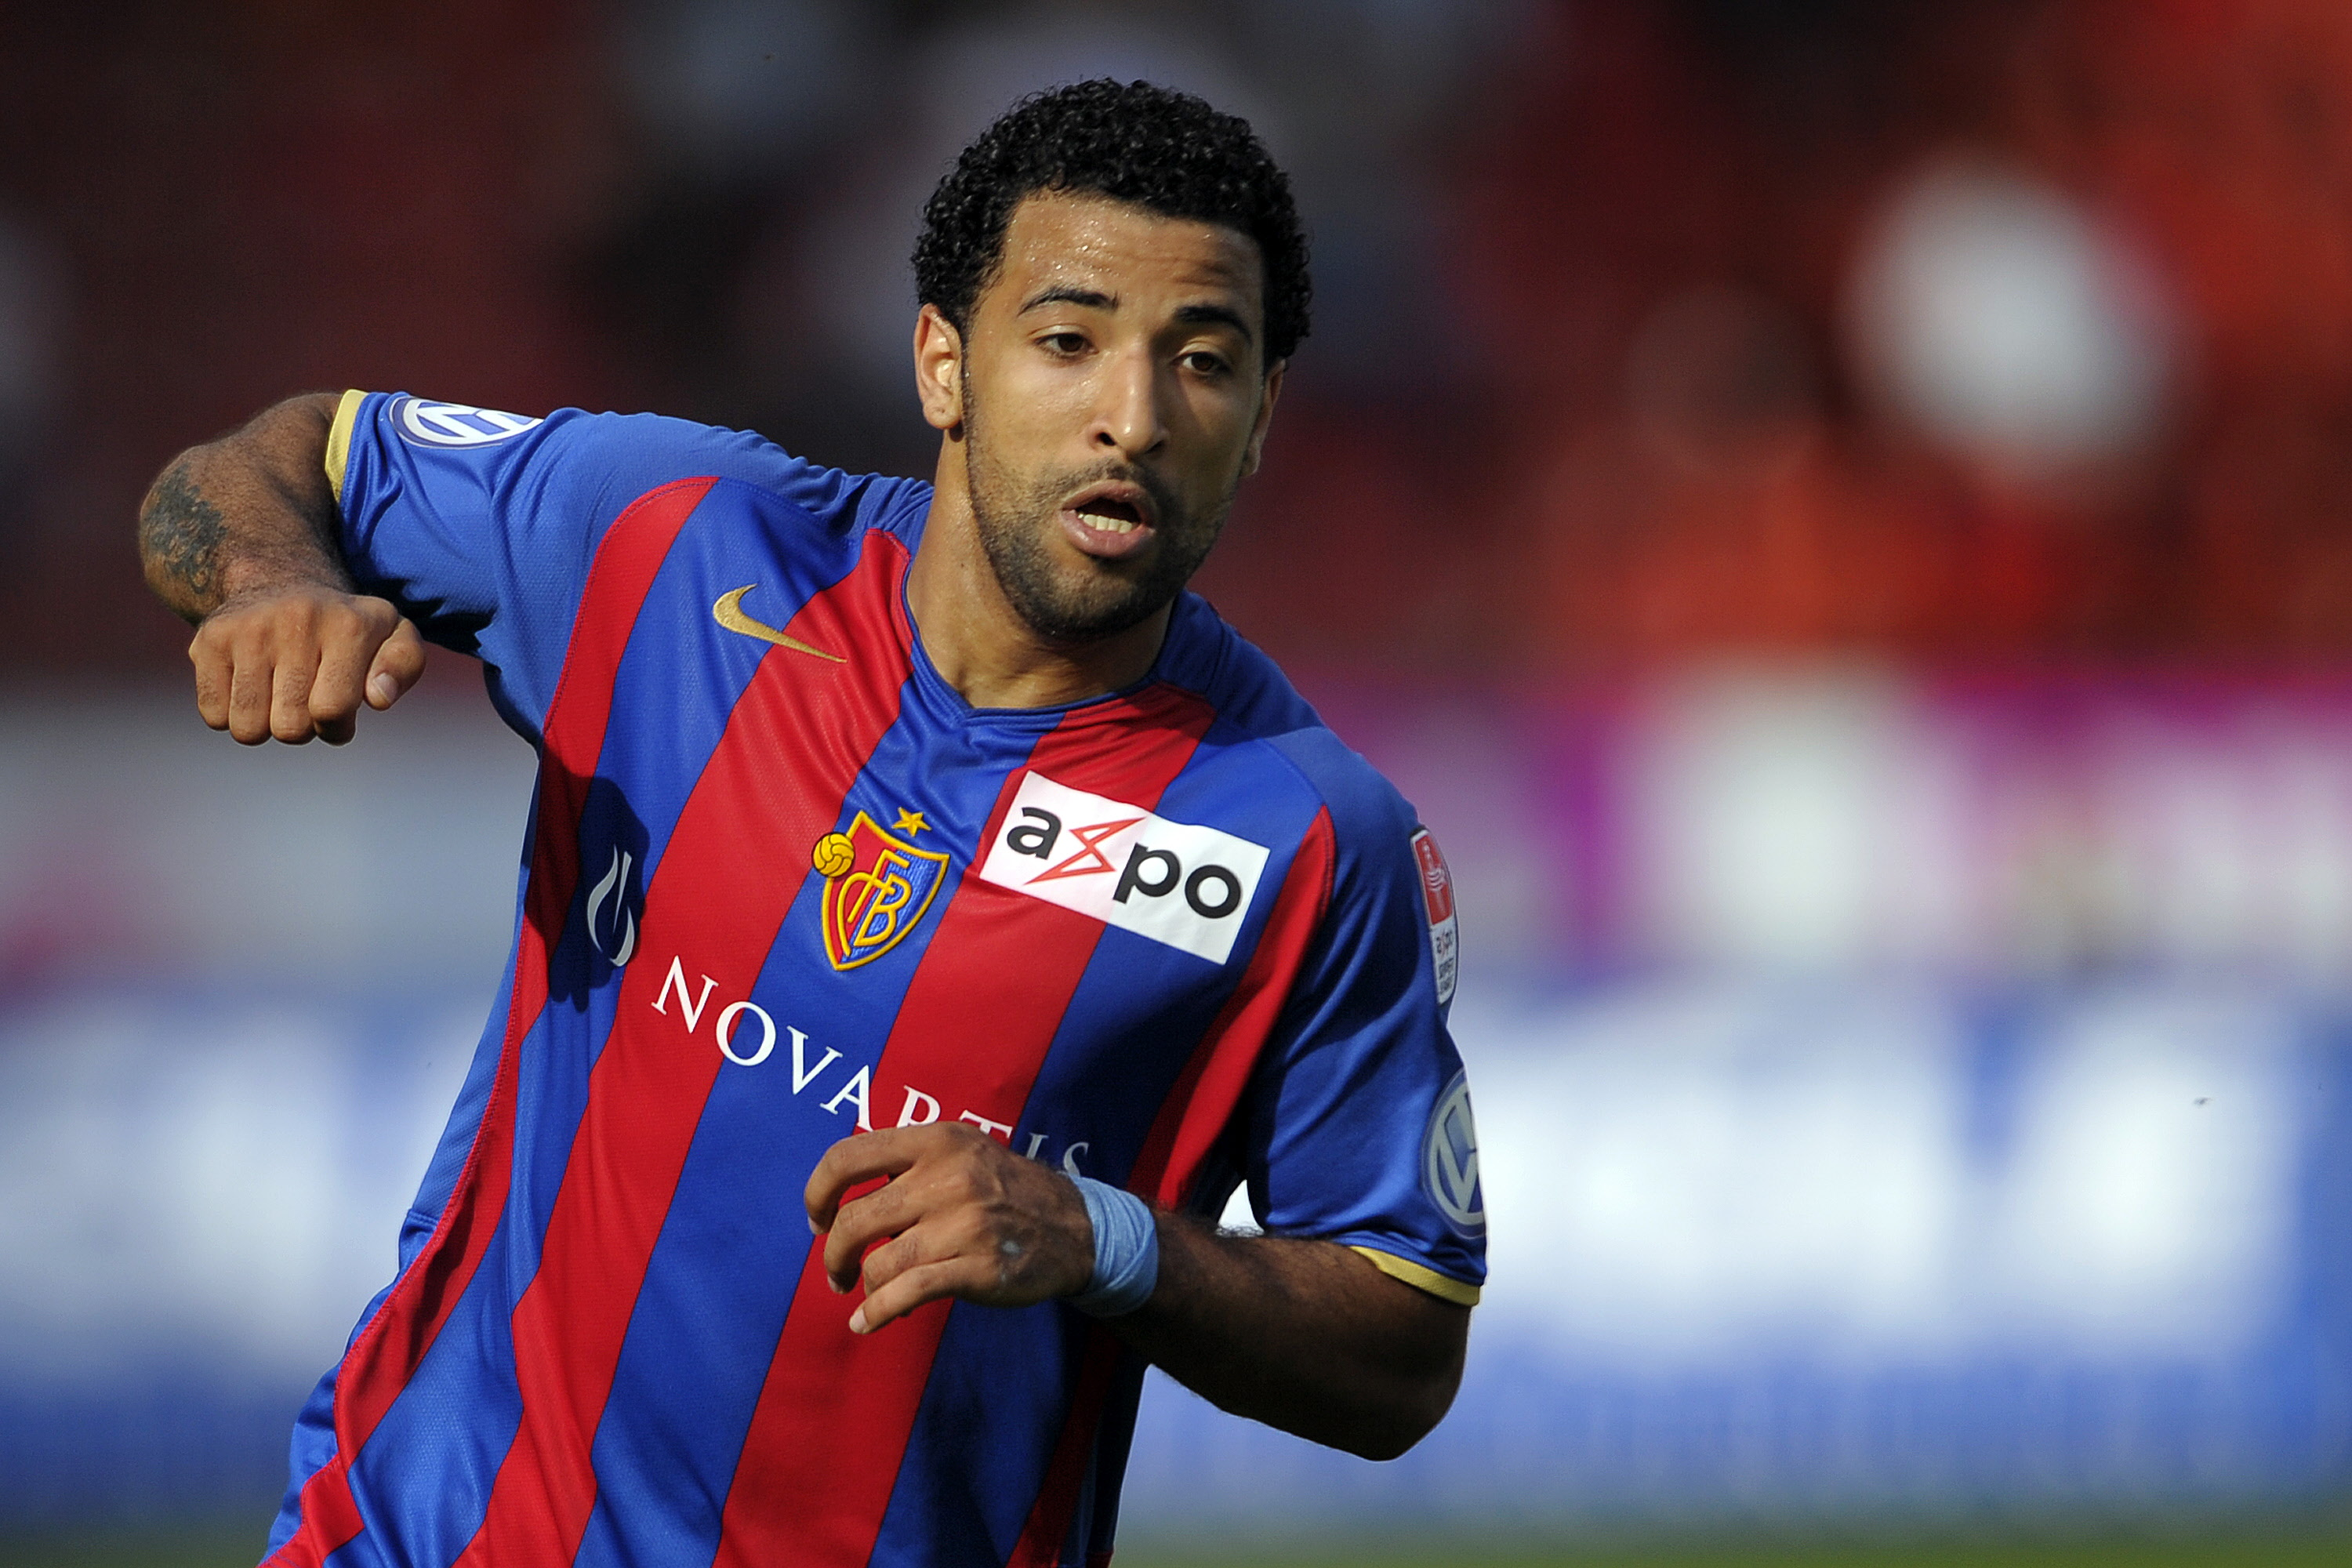 SWITZERLAND, ZURICH - APRIL 25:  Carlitos of FC Basel 1893 during the Swiss Super League match between Grasshopper Club and FC Basel at Letzigrund Stadium on April 25, 2010 in Zurich, Switzerland.   (Photo by Fabrice Coffrini / EuroFootball / Getty Images